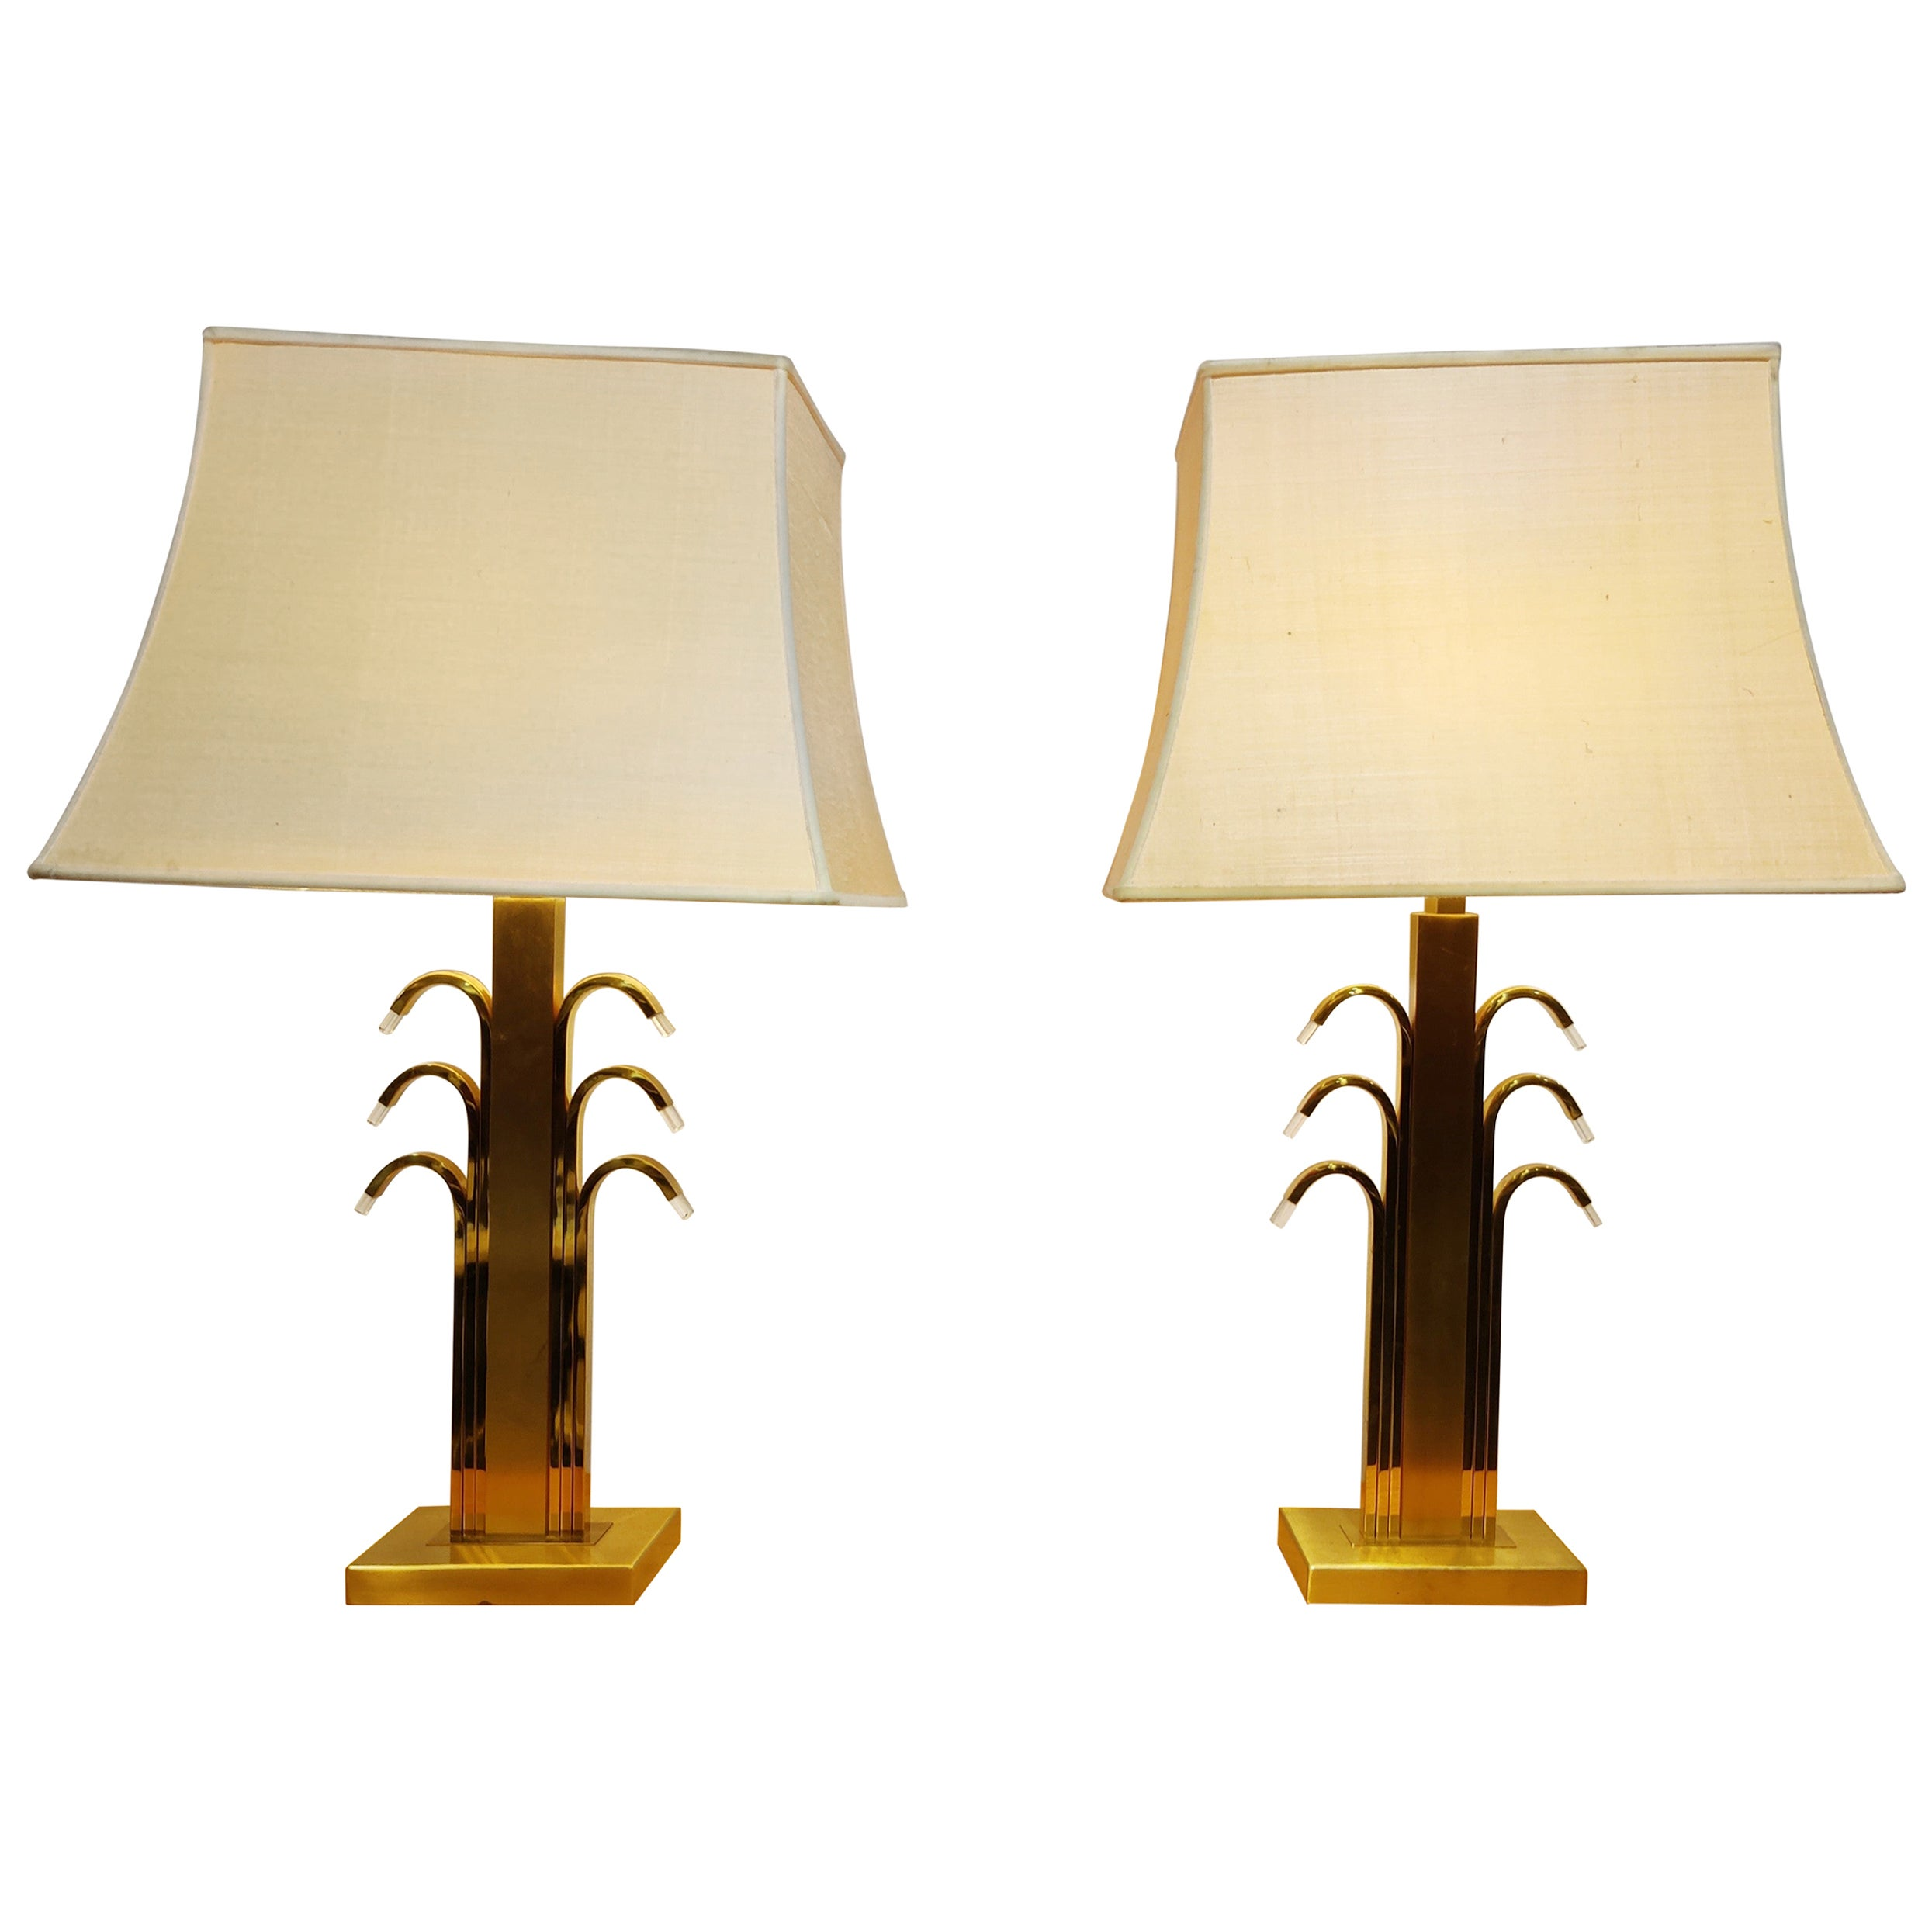 Vintage Brass and Glass Table Lamps, 1970s